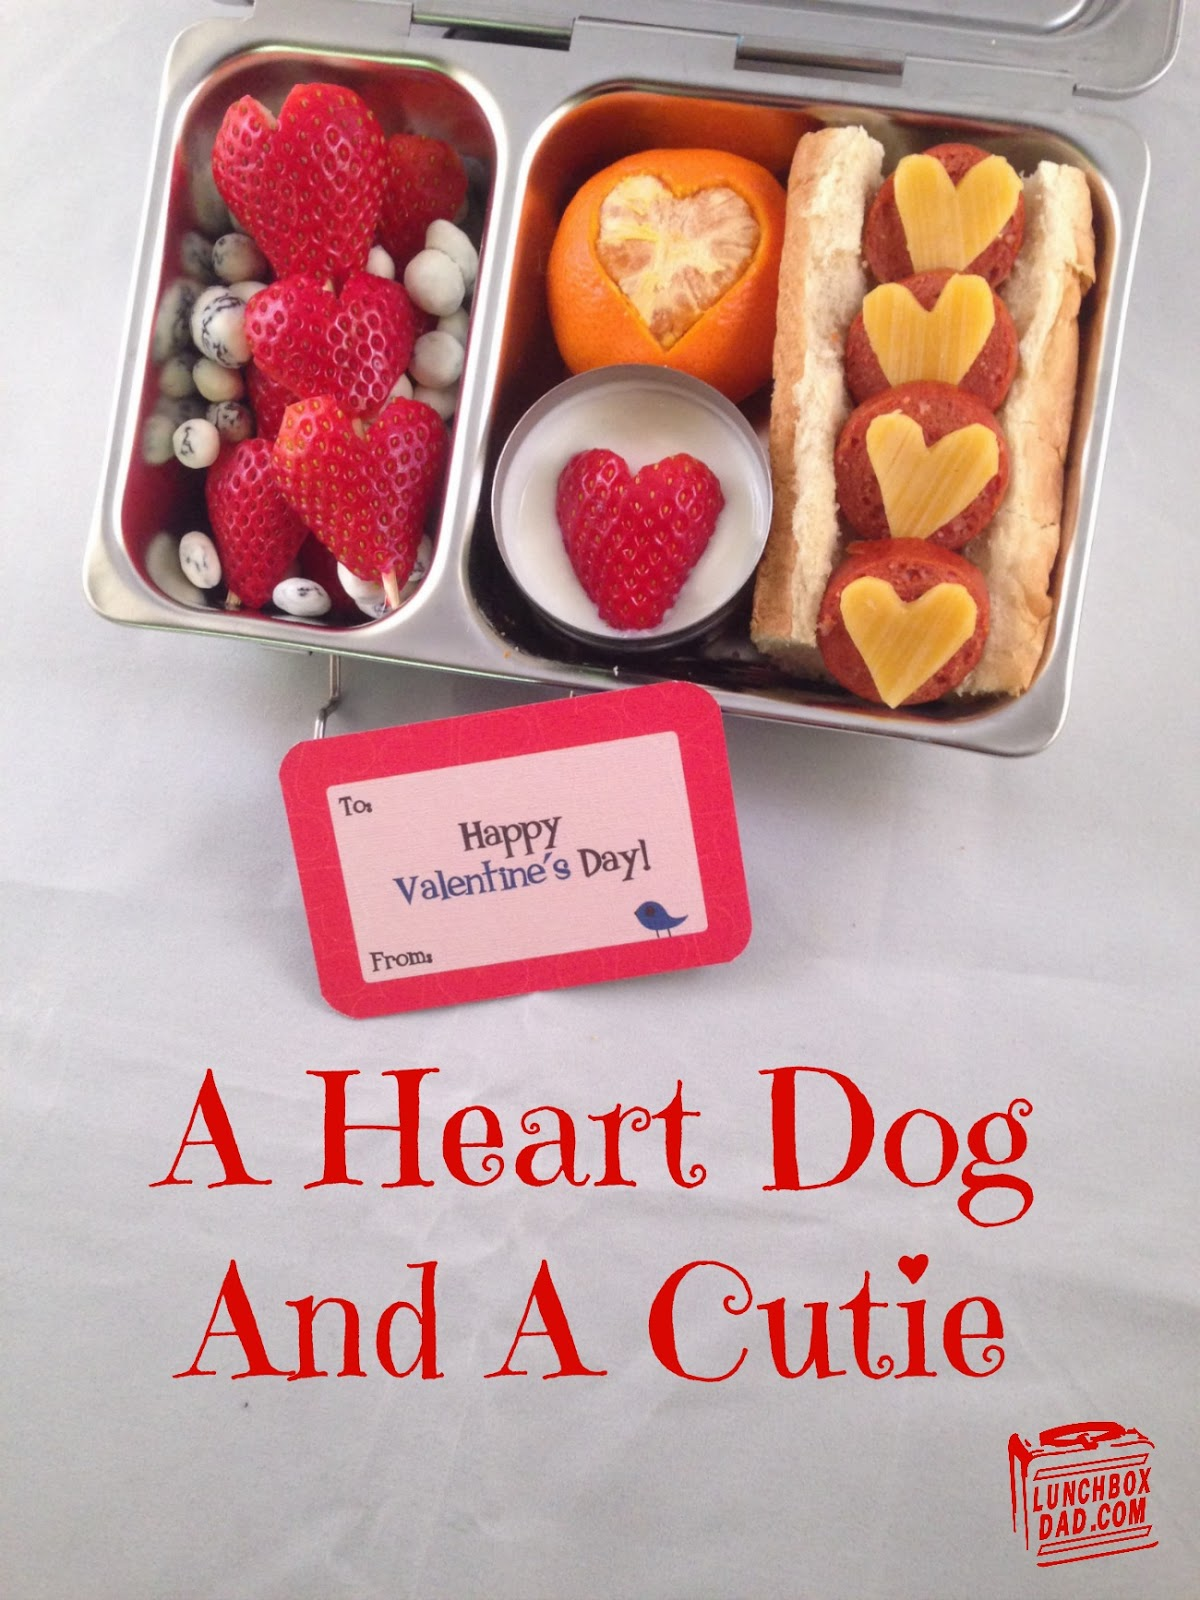 A Heart Dog and A Cutie Lunch